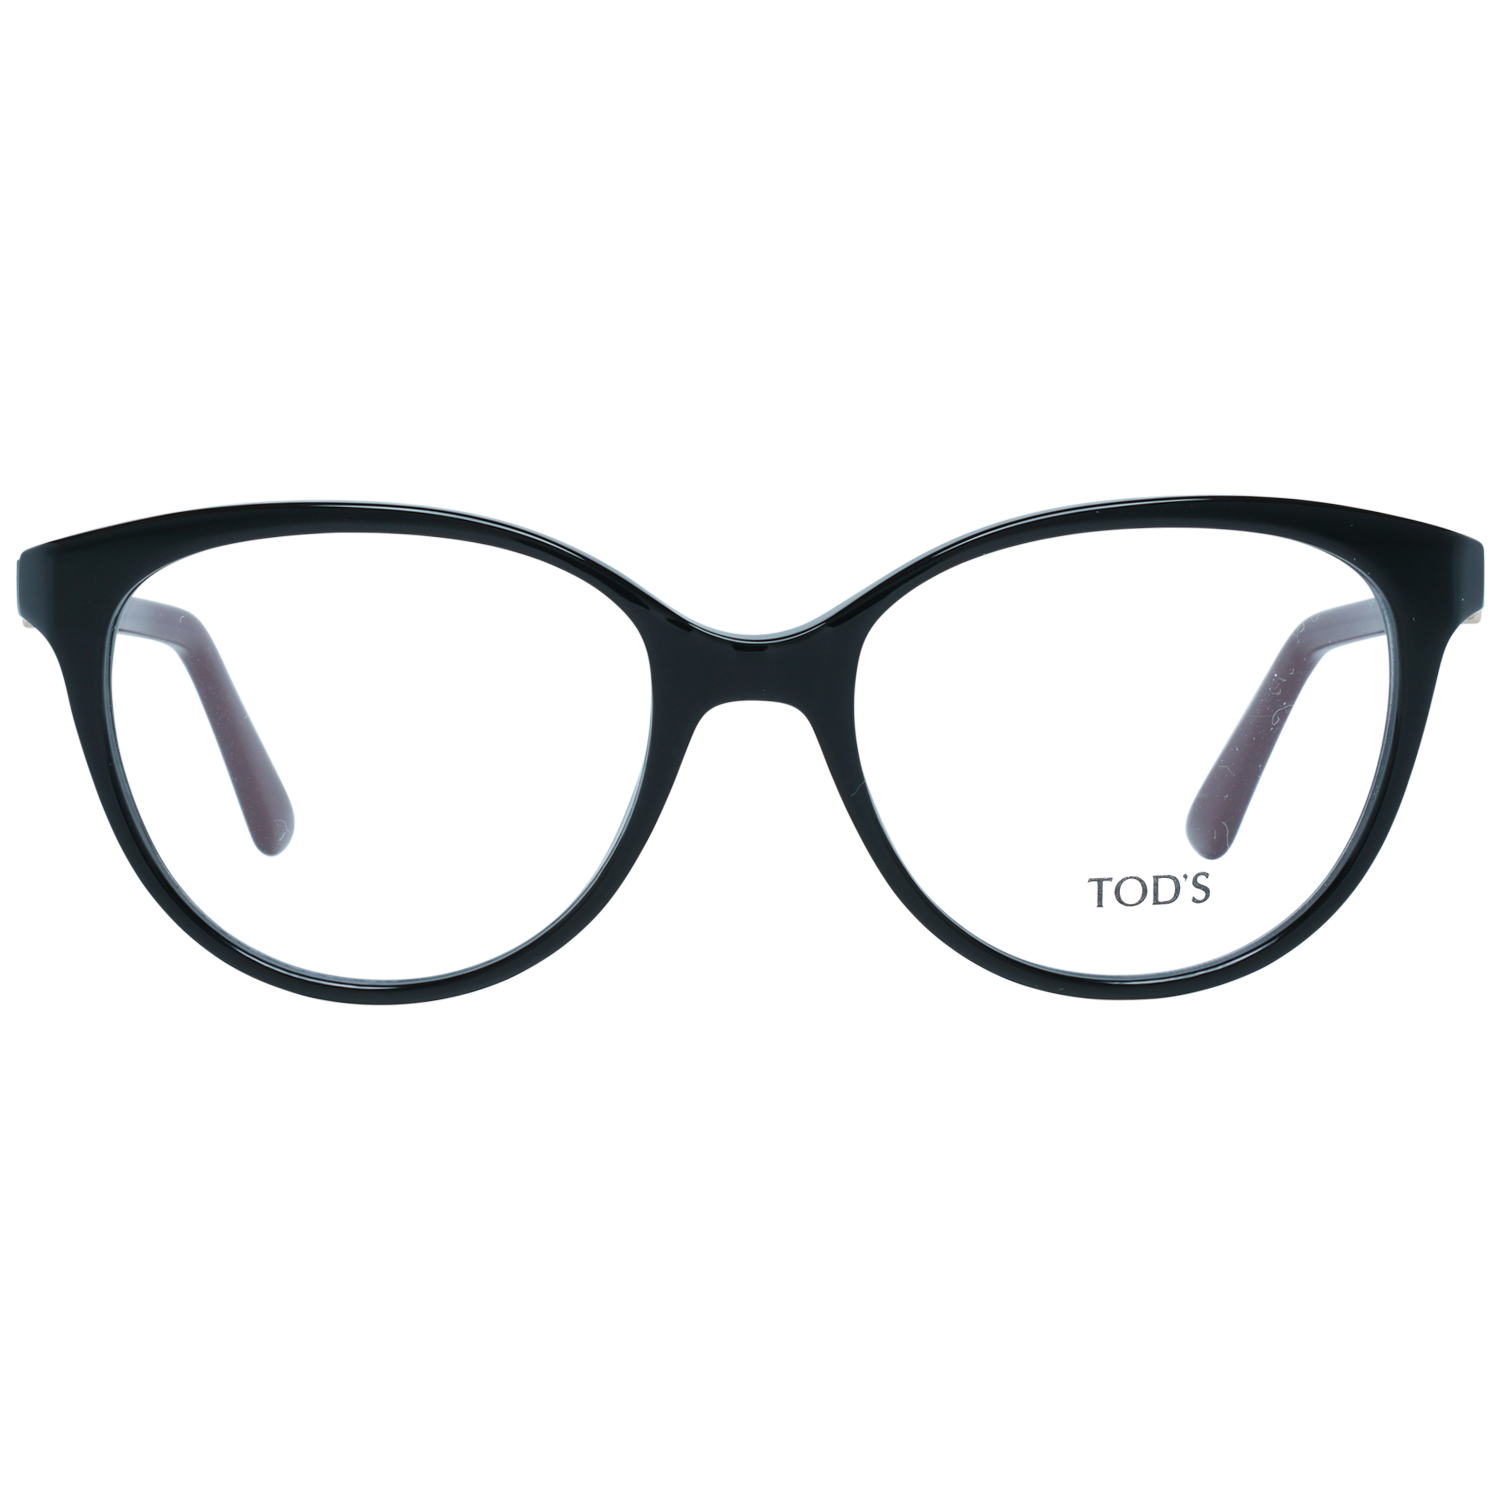 Tods Optical Frame TO5144 005 52 Women Black